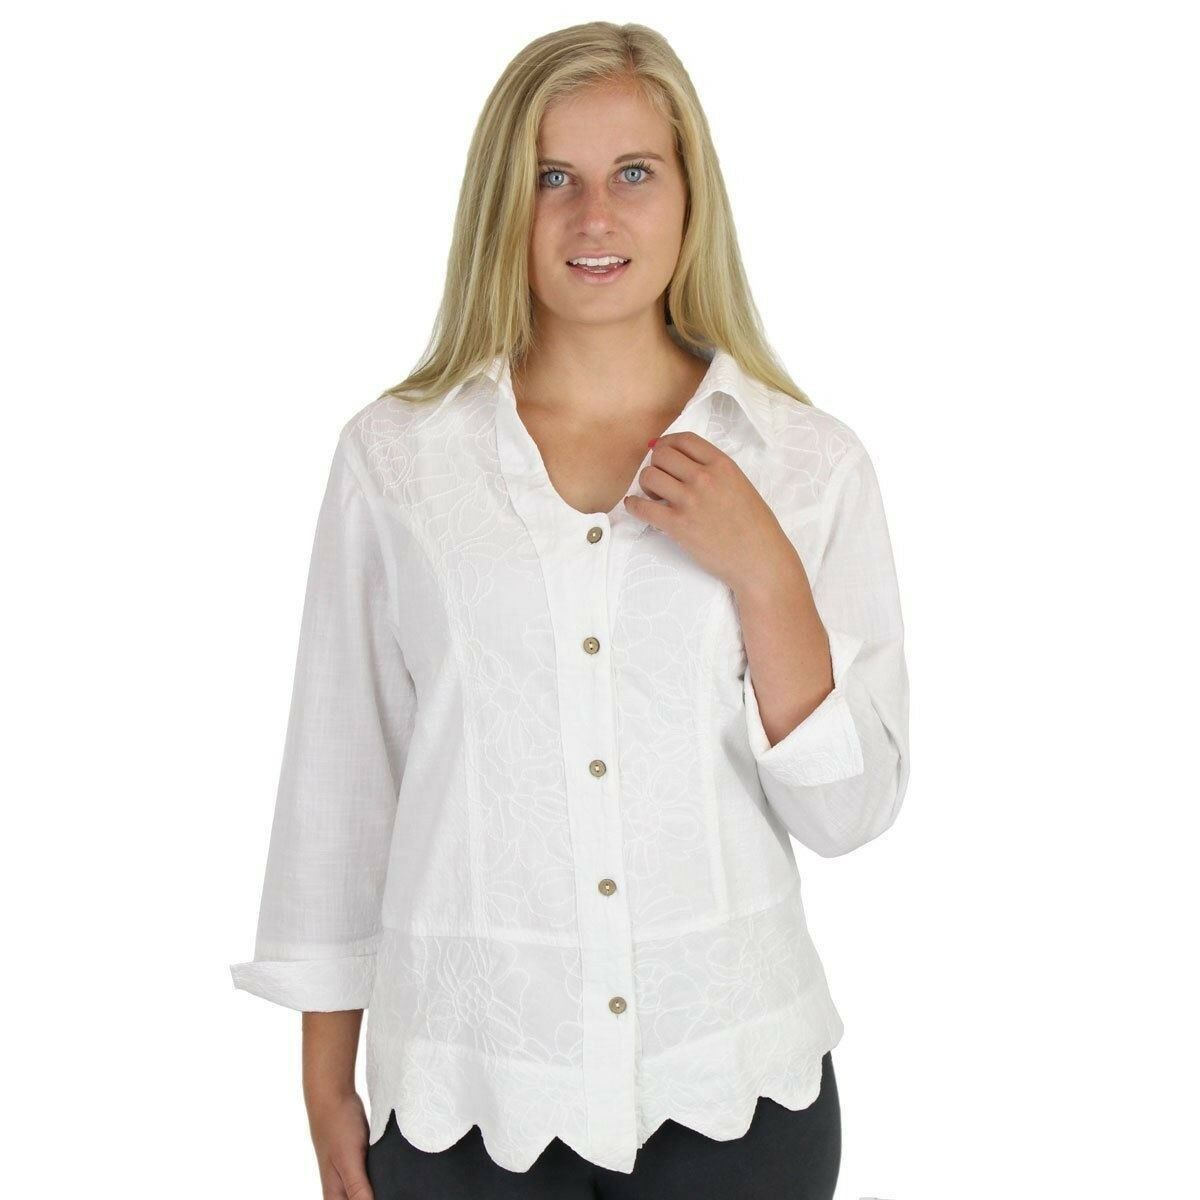 Embroiderot Cotton Shirt Top - 100% Cotton - Made in USA